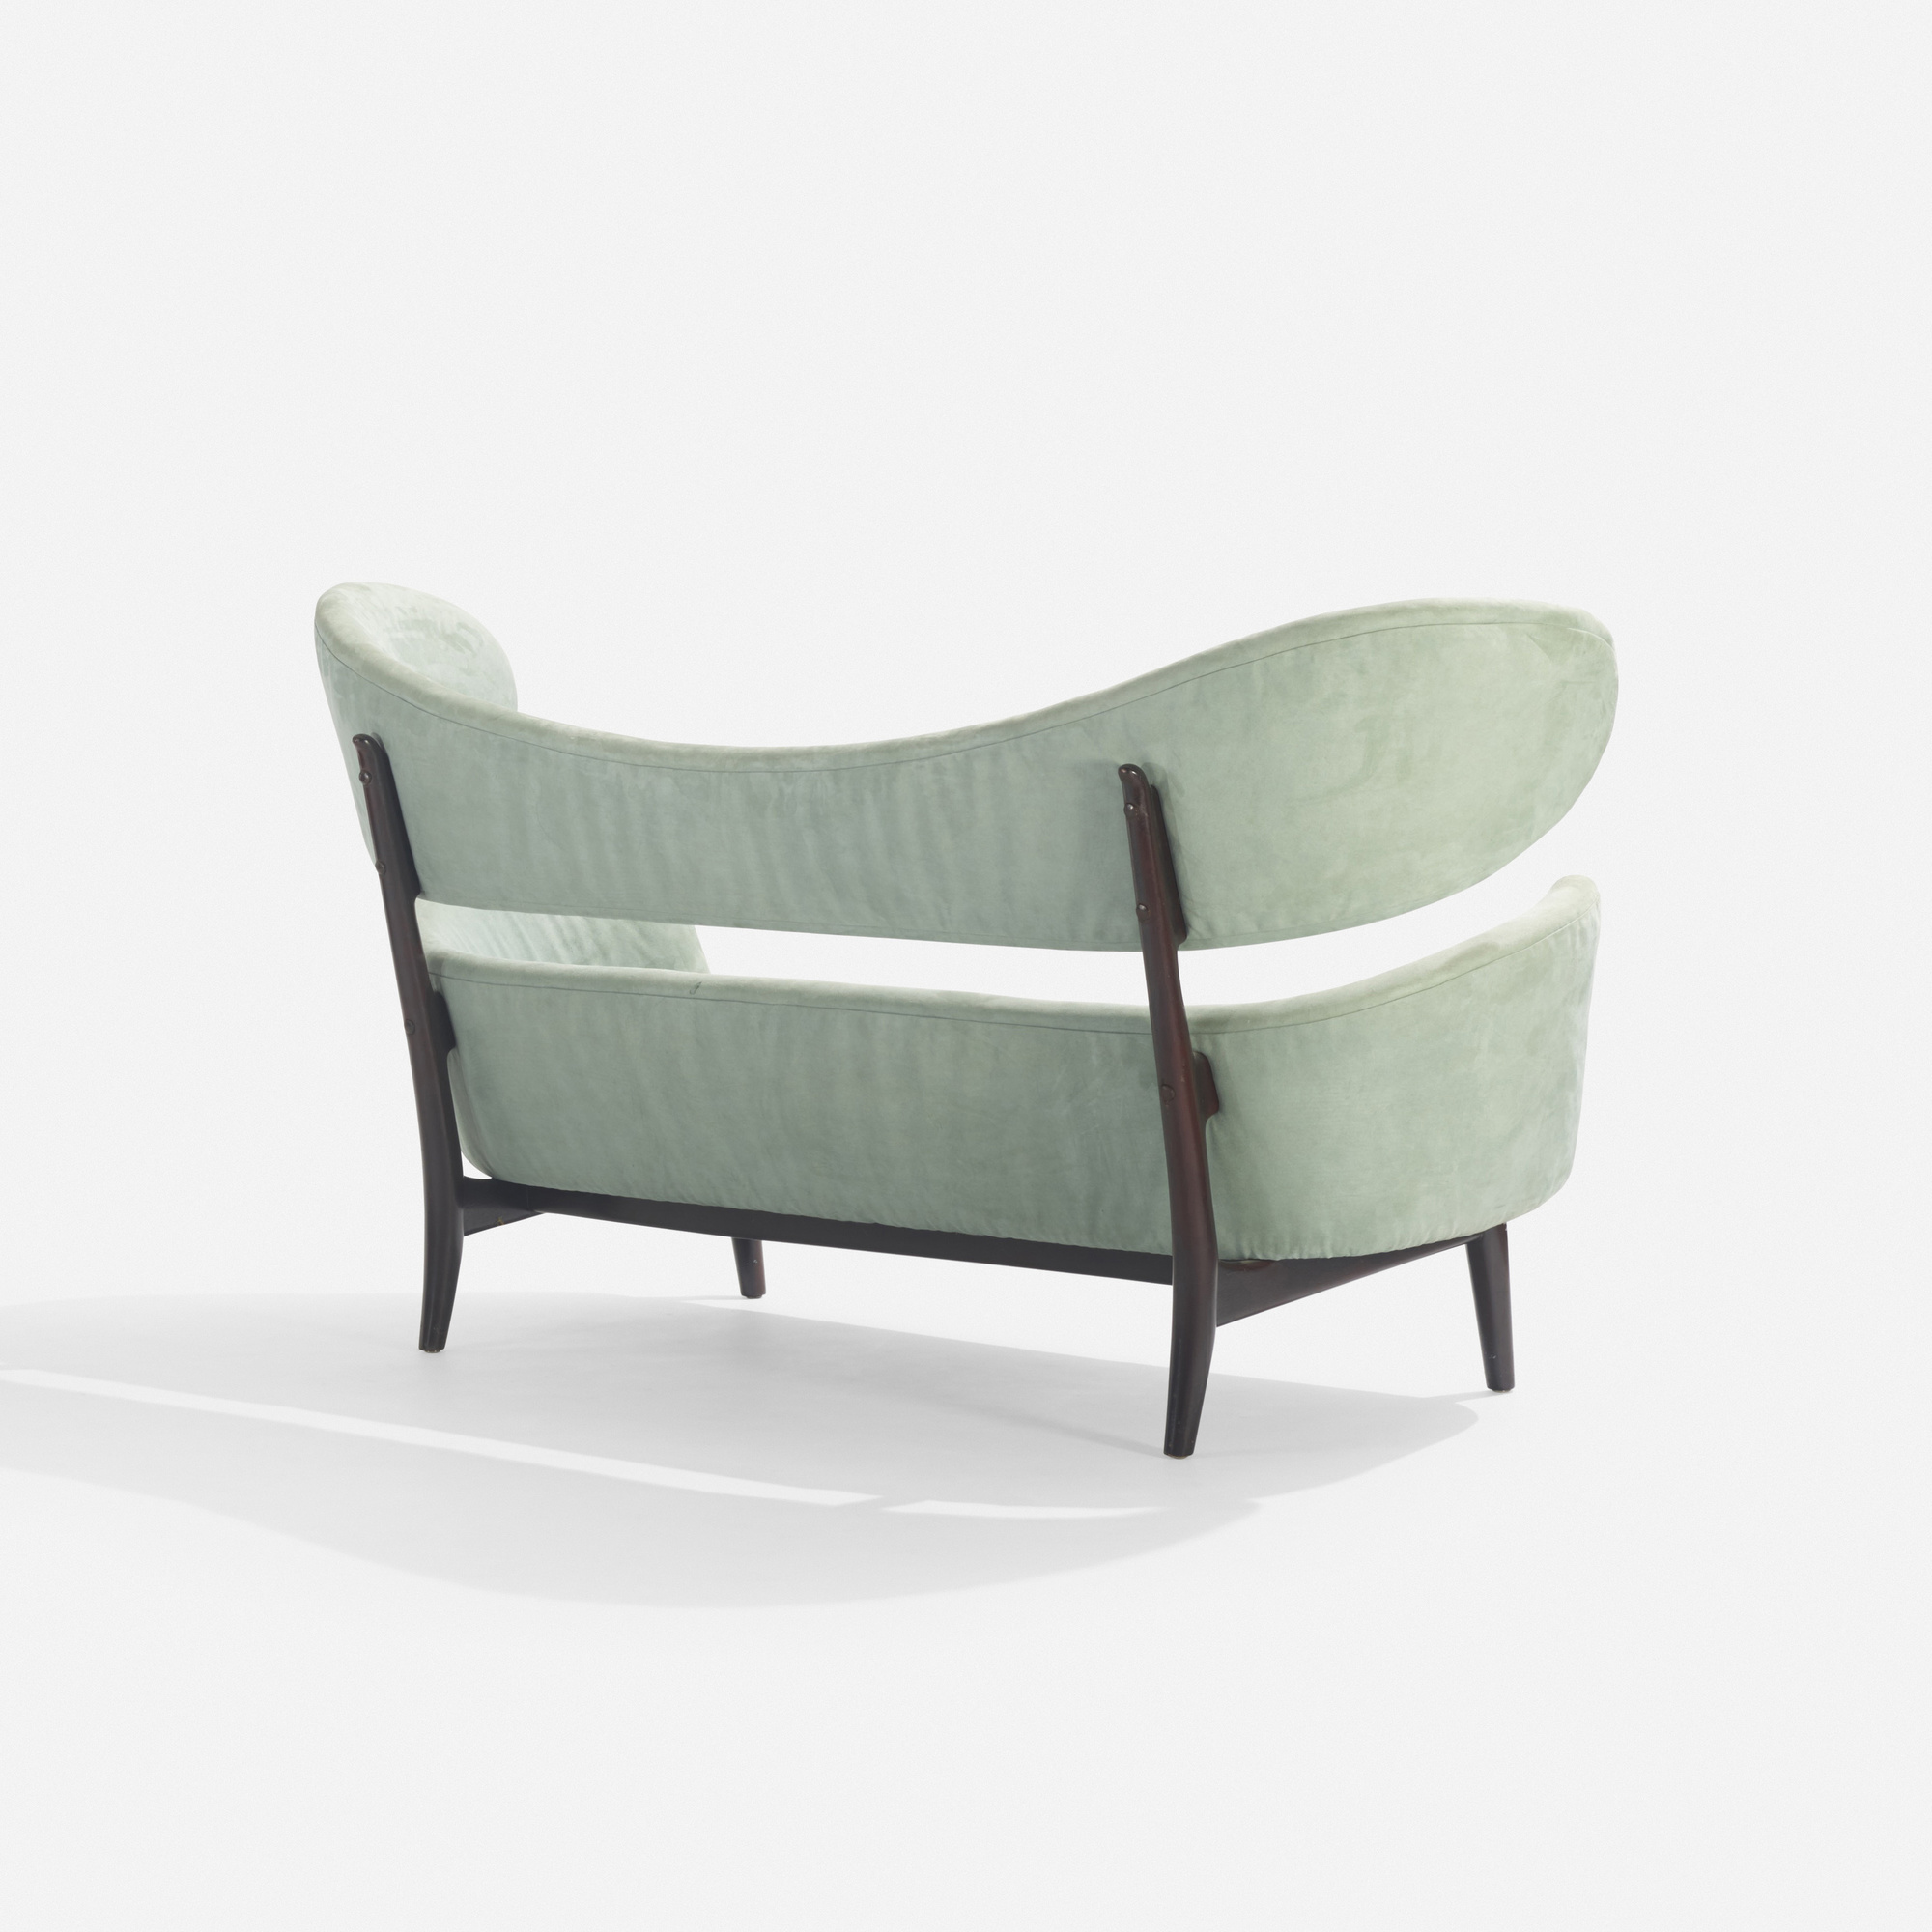 134: Finn Juhl / rare sofa (3 of 5)